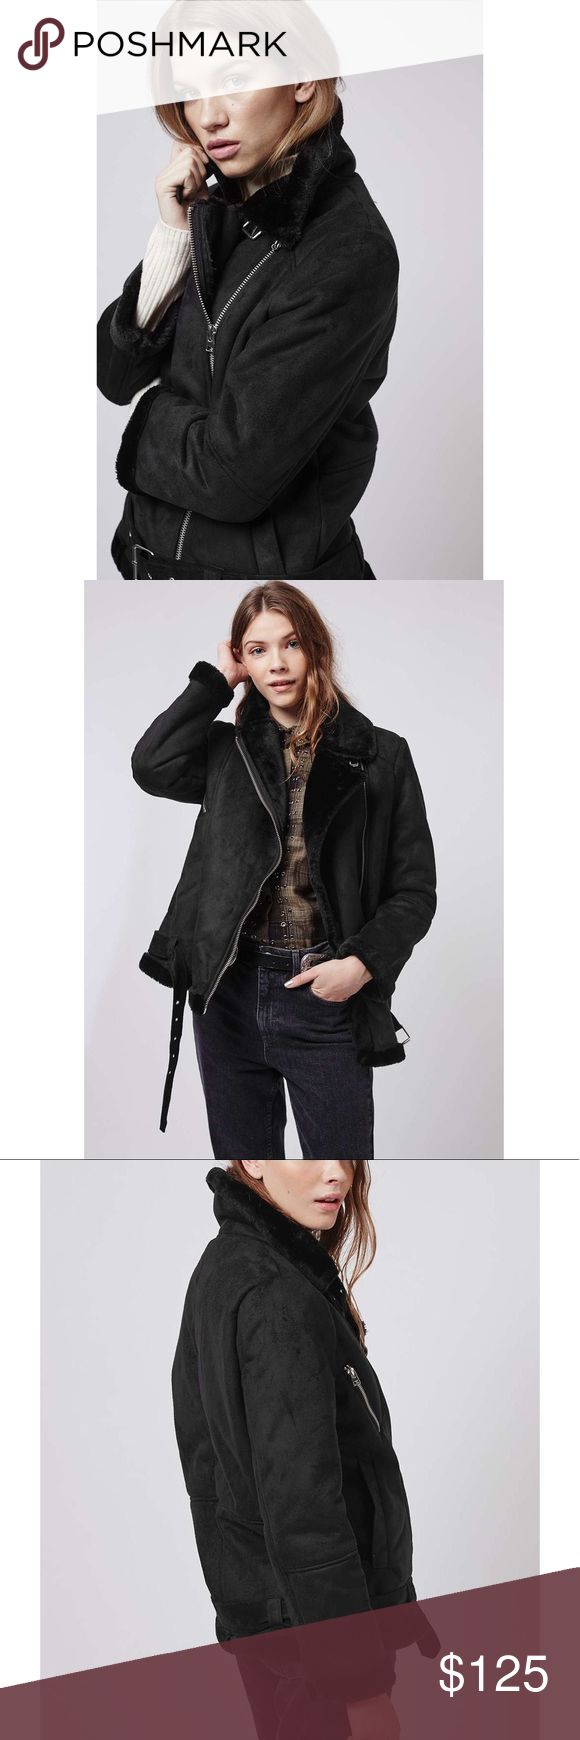 Topshop Faux Fur Aviator Jacket •Classic aviator biker jacket in faux fur.    •Size US6, will fit a Medium.  •New without tags.  •NO TRADES/HOLDS/PAYPAL/MERC/VINTED/NONSENSE. Topshop Jackets & Coats